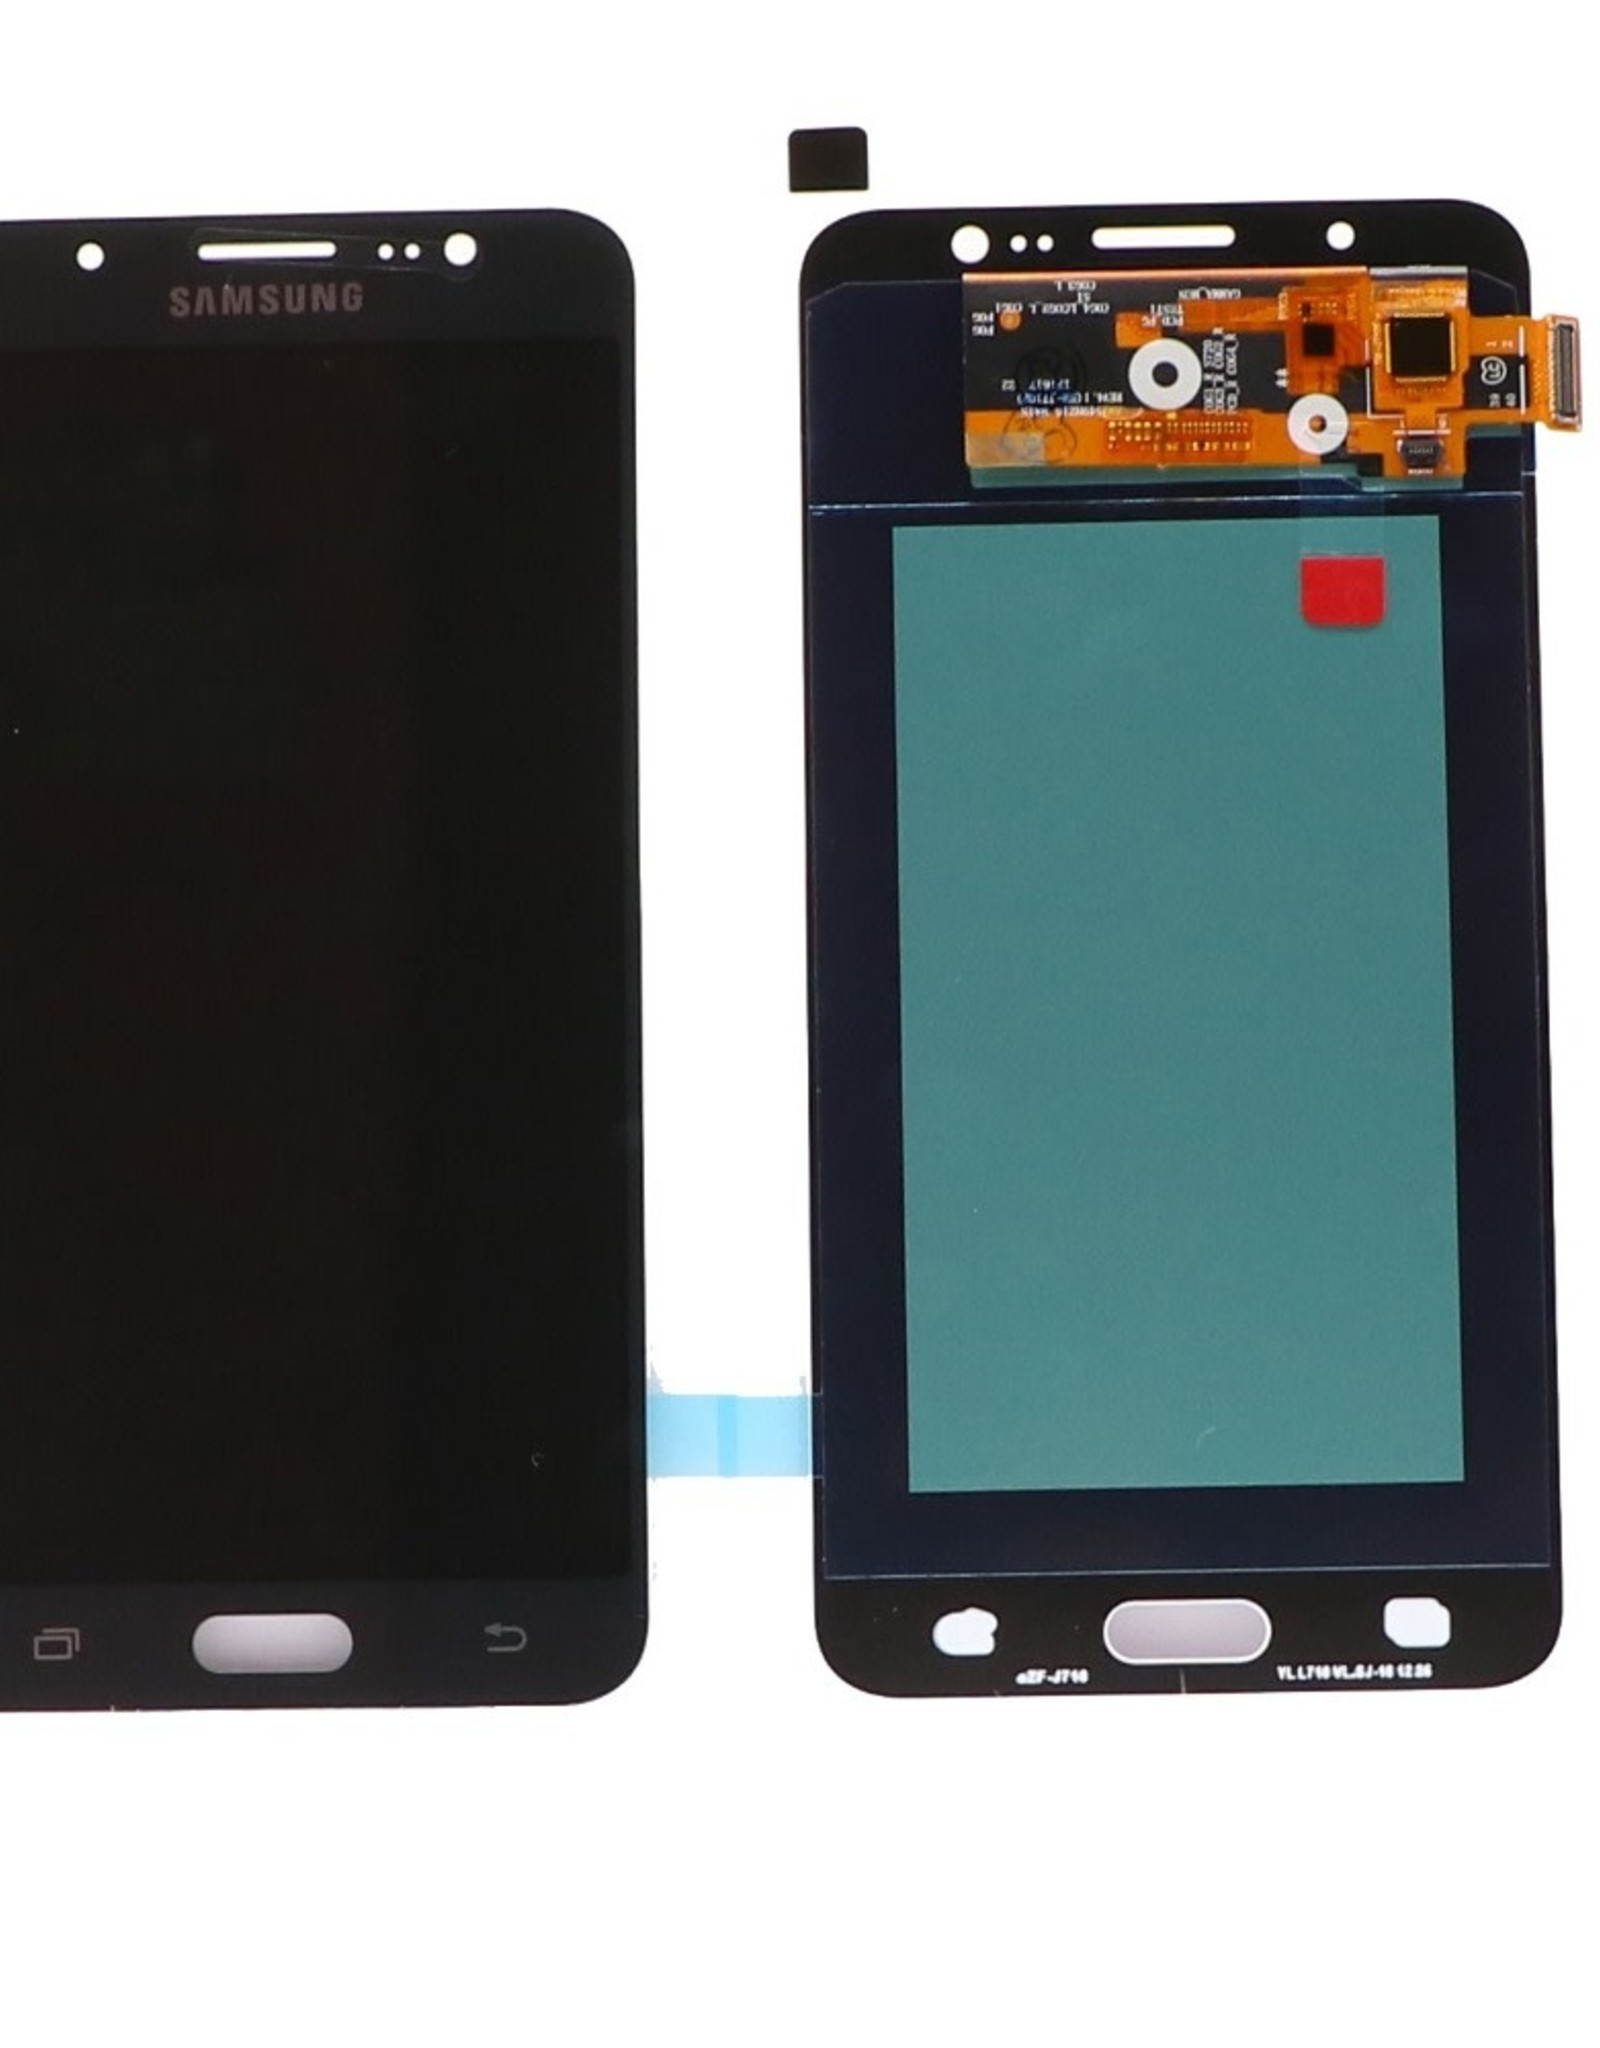 Samsung Samsung Galaxy J7 2016 Screen Replacement-LCD Display Touch Screen Glass Digitizer J710 SM-J710 J710DS J710H J710MN J710GN J710K J710FN / On8 J710F J710FZ J710DF SM-J710MN AMOLED Assembly